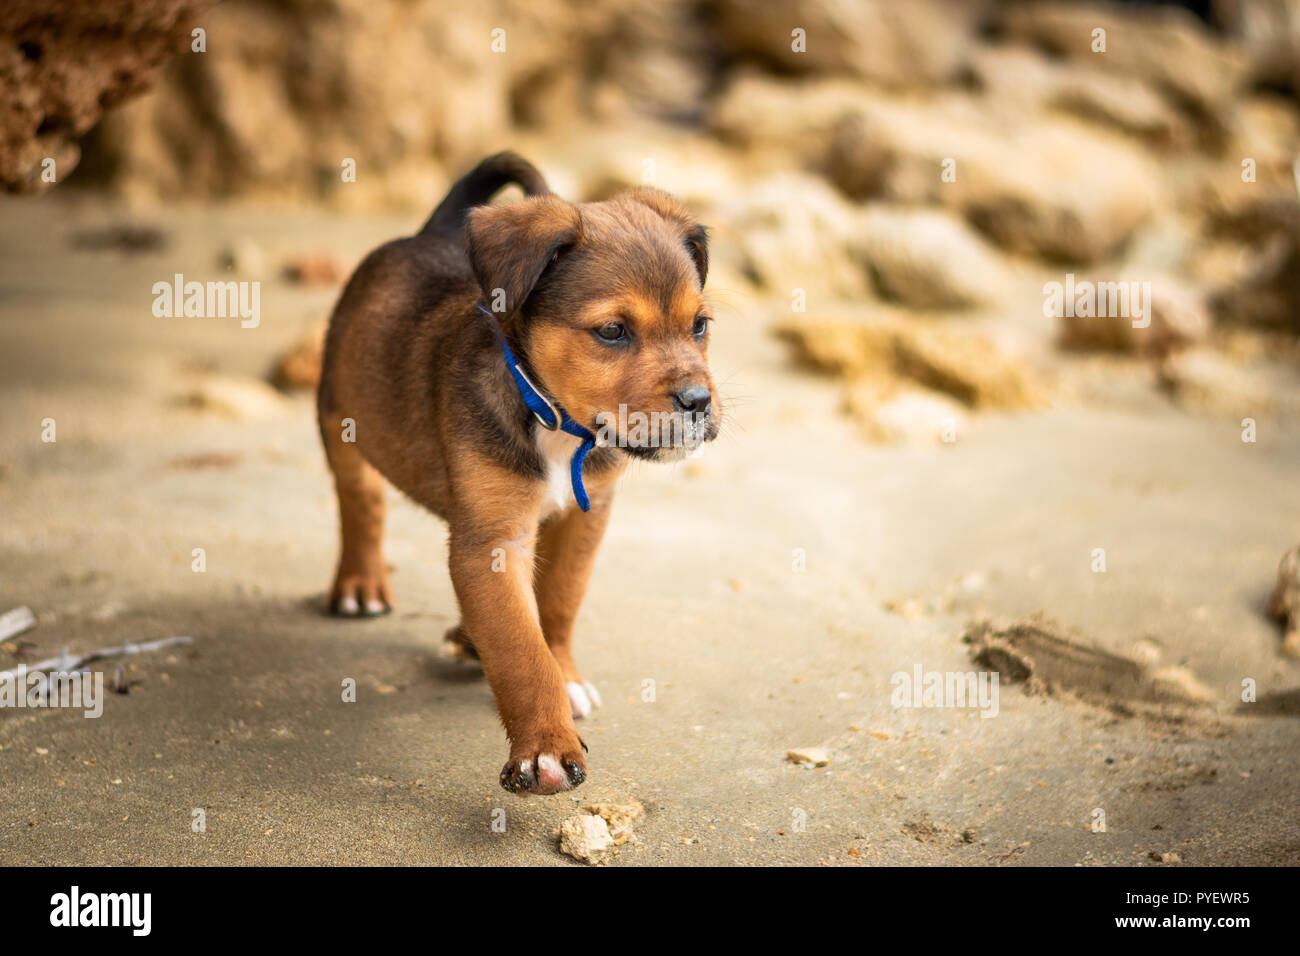 Labrador And Rotwailer Mix Breed Puppy Dog Brown And Black Color Walking Free With A Blue Collar On The Beach Stock Photo Alamy